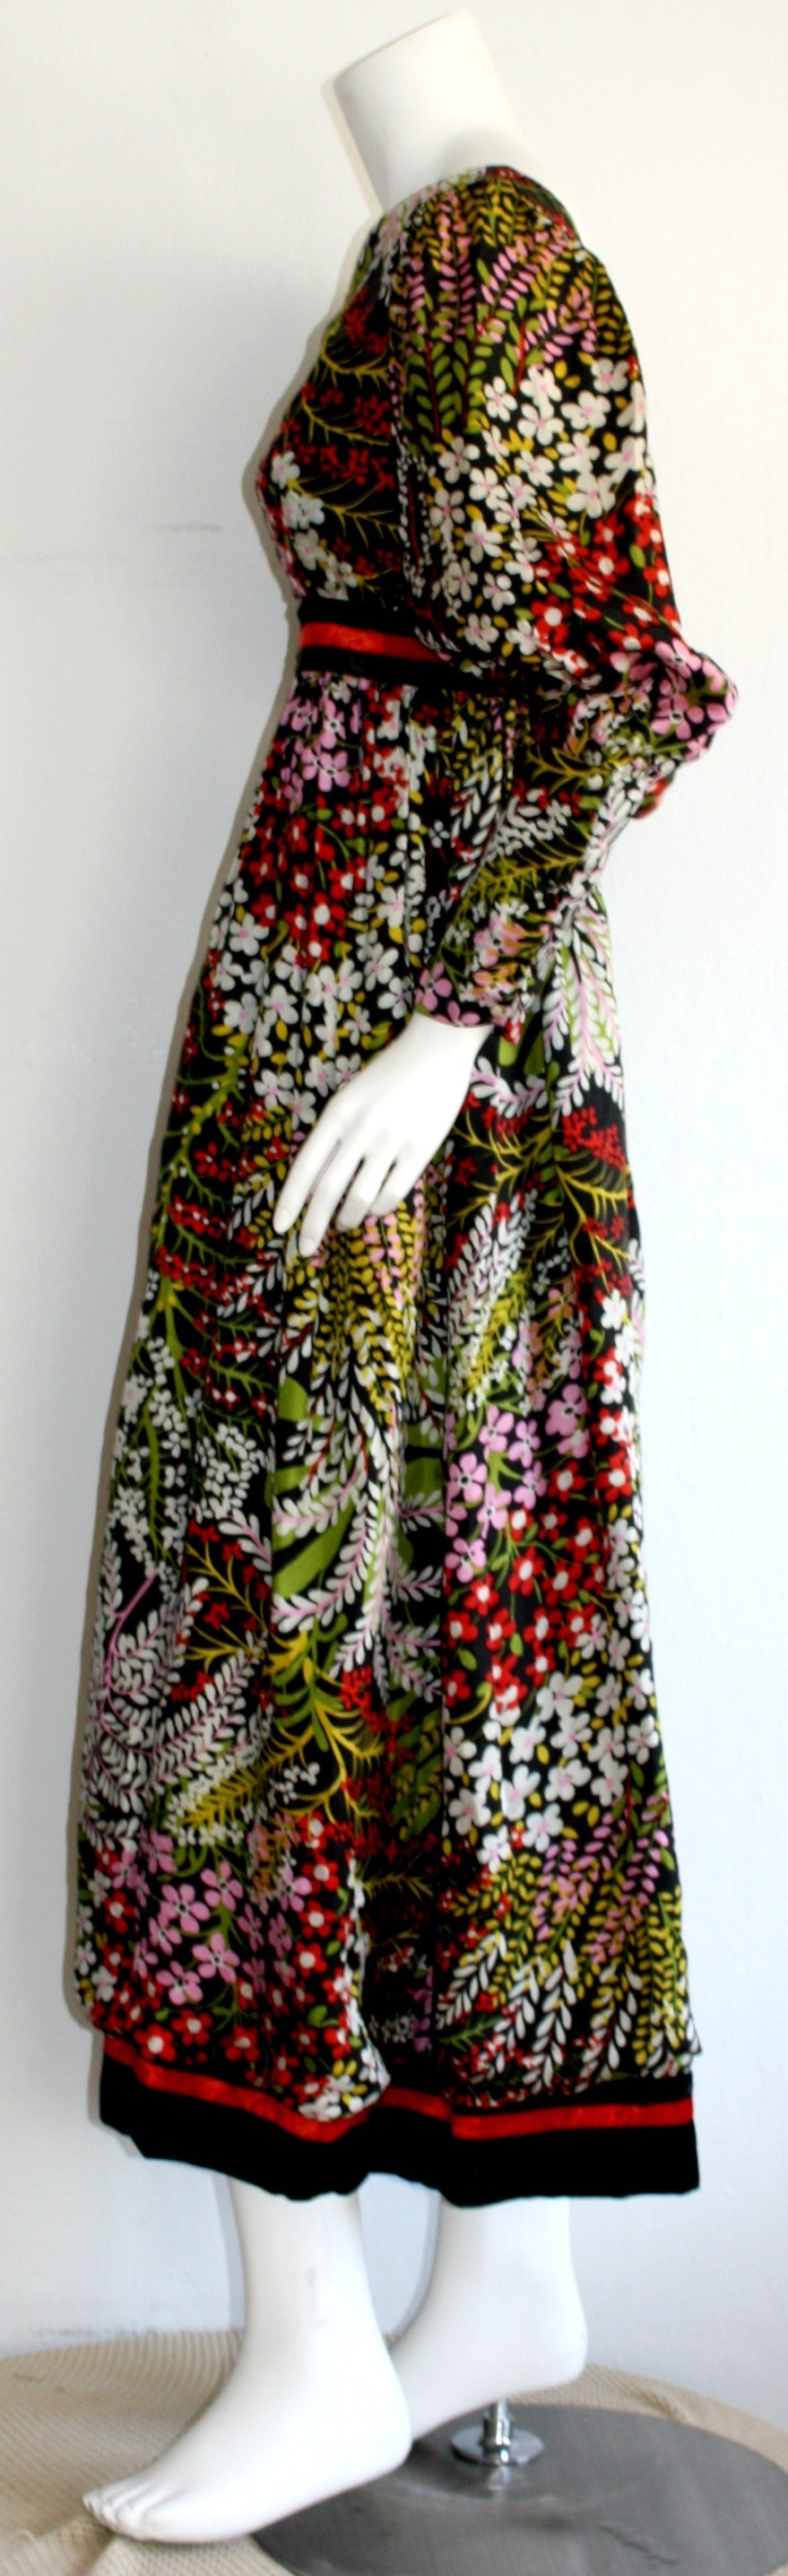 Shop for maxi long sleeve silk dresses and other fashion products at ShapeShop. Browse our fashion selections and save today.